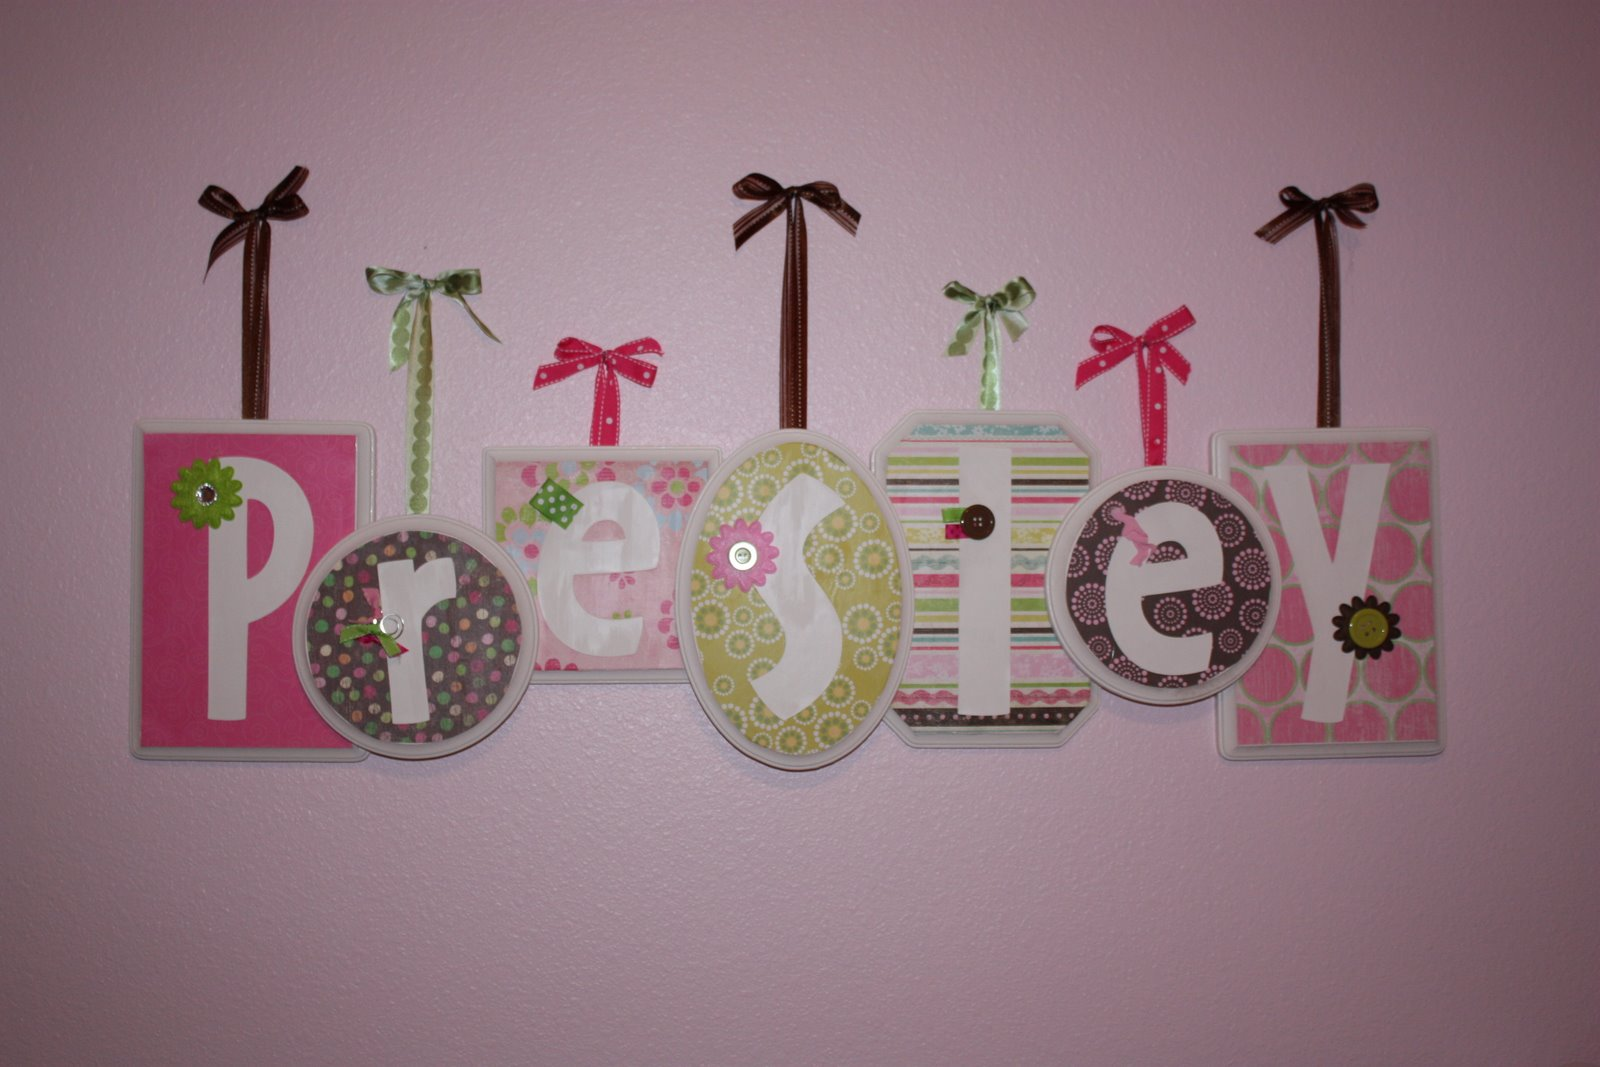 Diy Wall Art Name : Diy decor ideas design dazzle